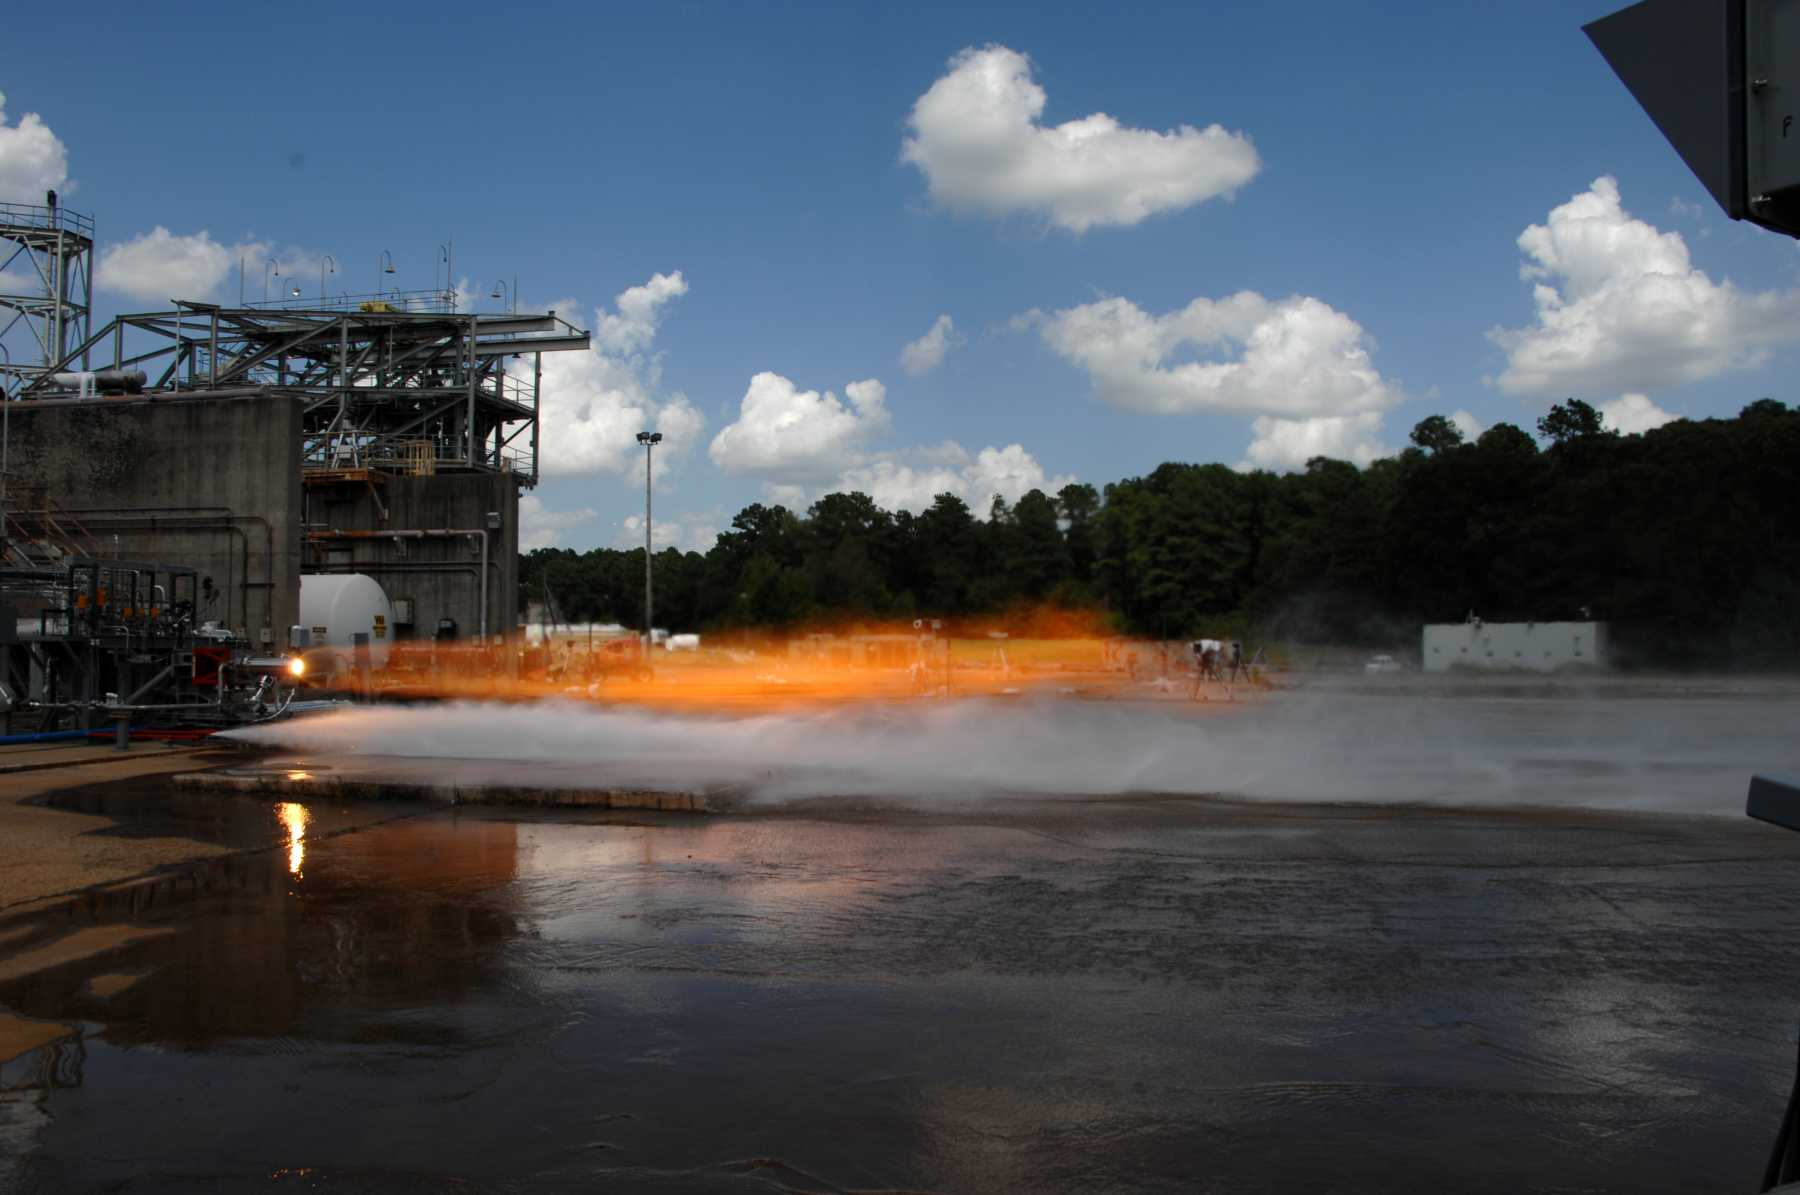 NASA Tests Newly Minted 3D-Printed Rocket Parts | nasa